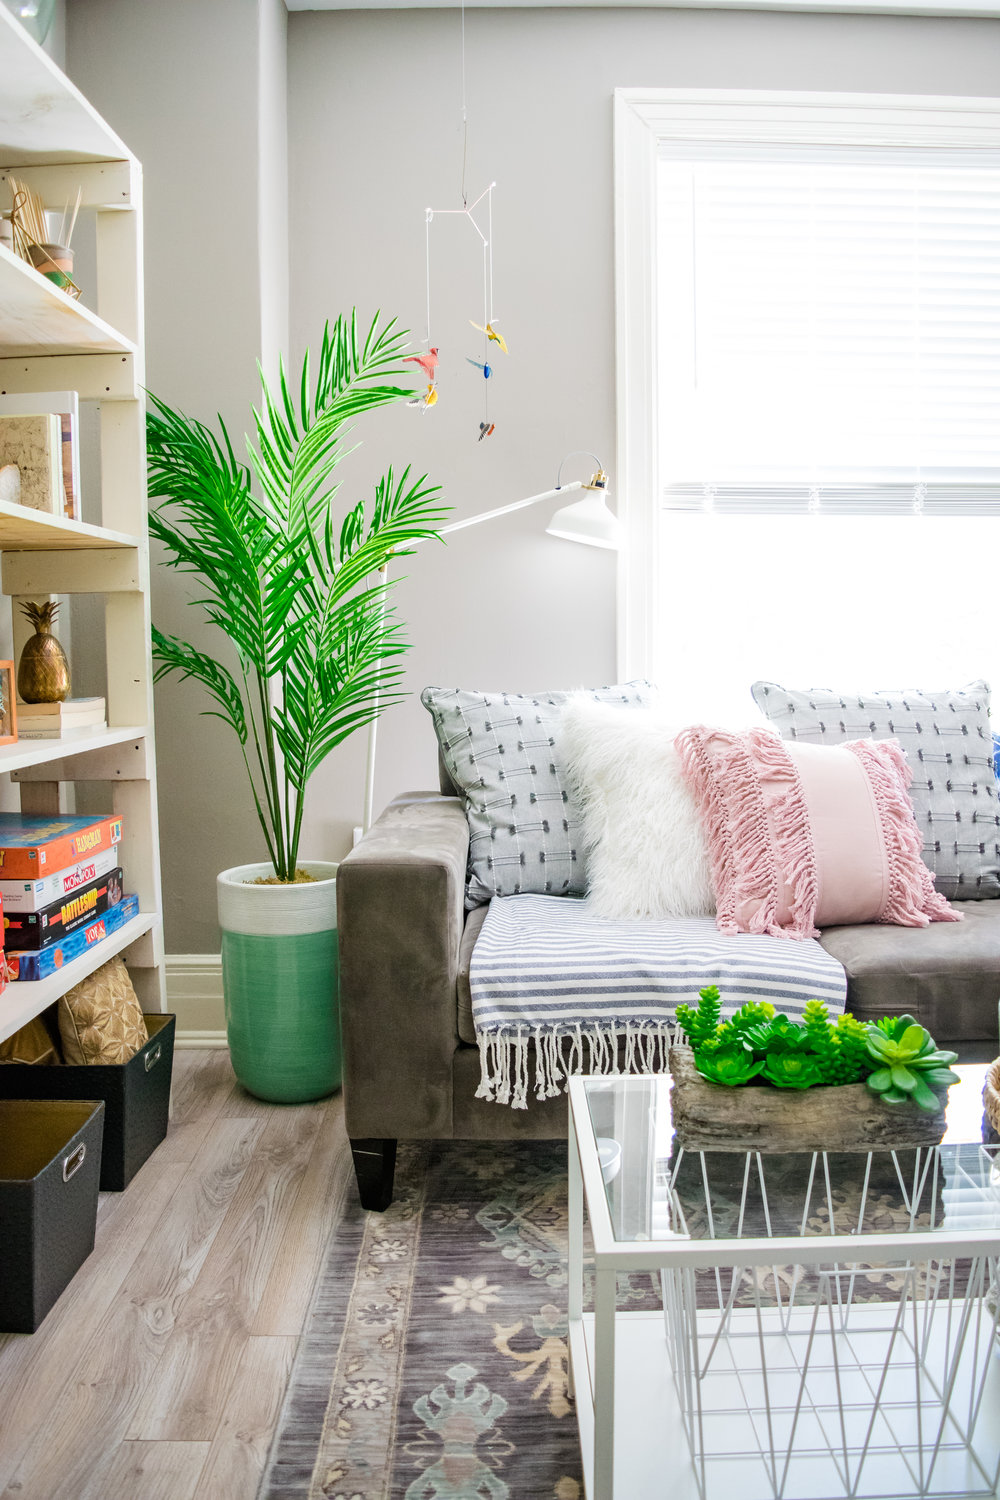 24-Hour Apartment Makeover Project | Before & After — Stevie Storck ...